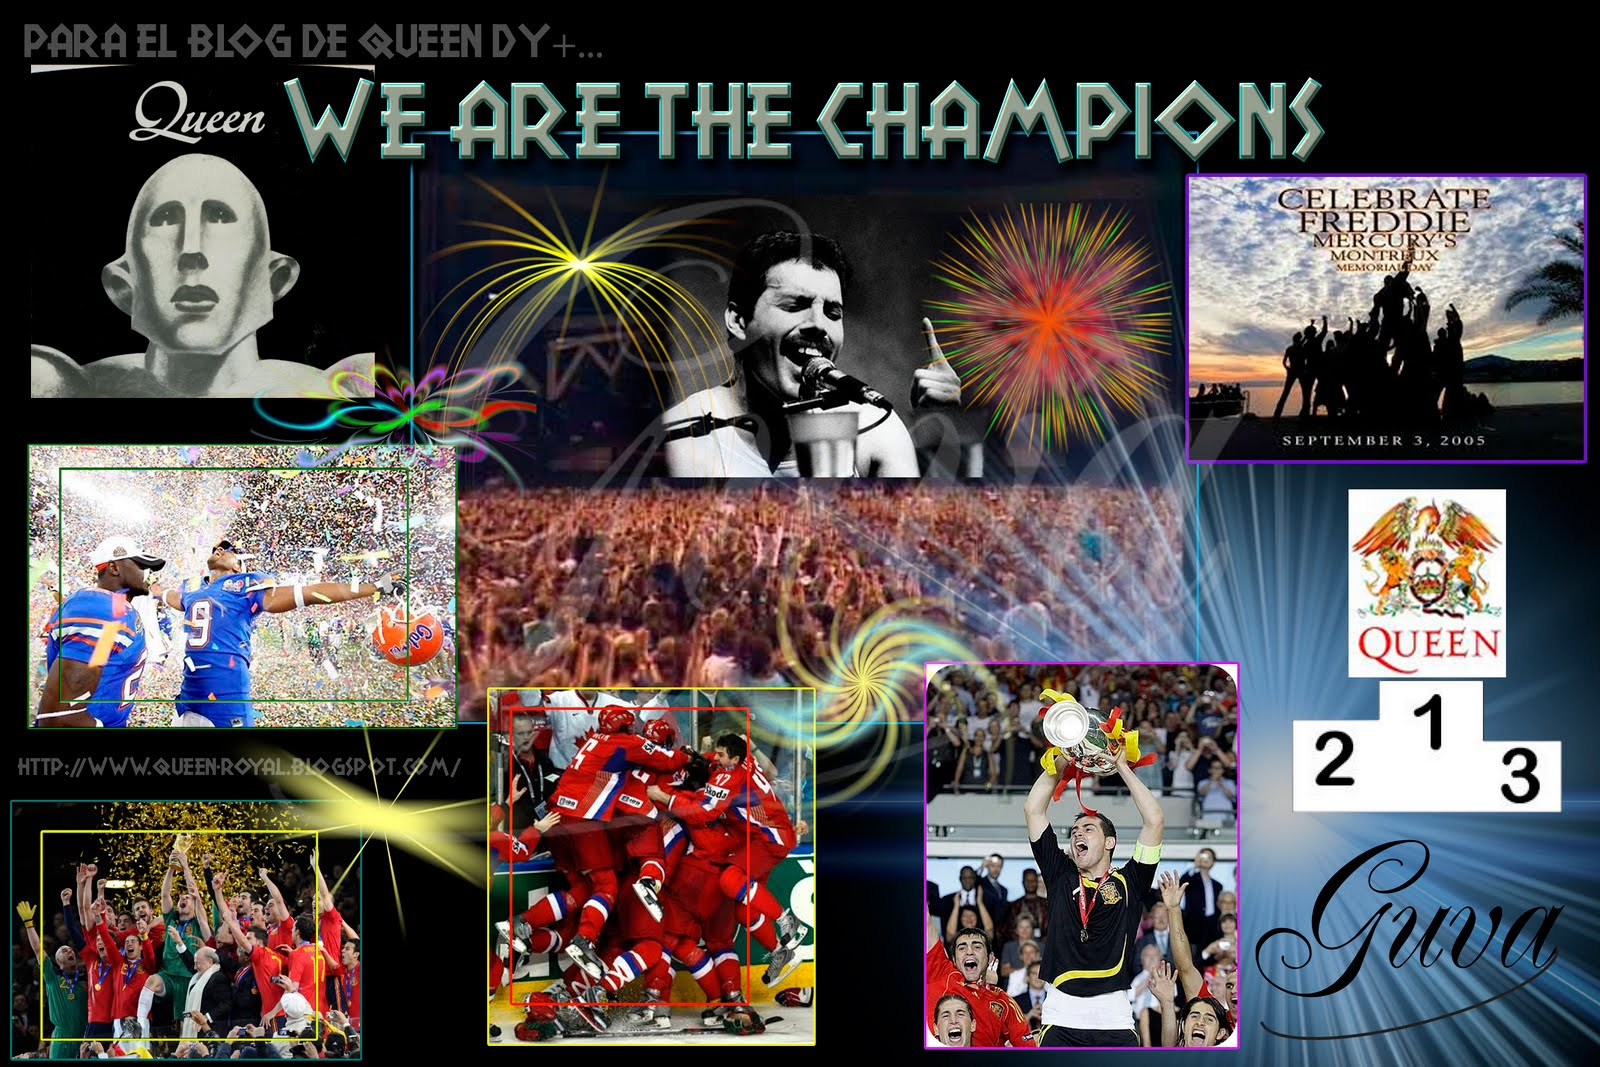 letra de la cancion we are the champions: